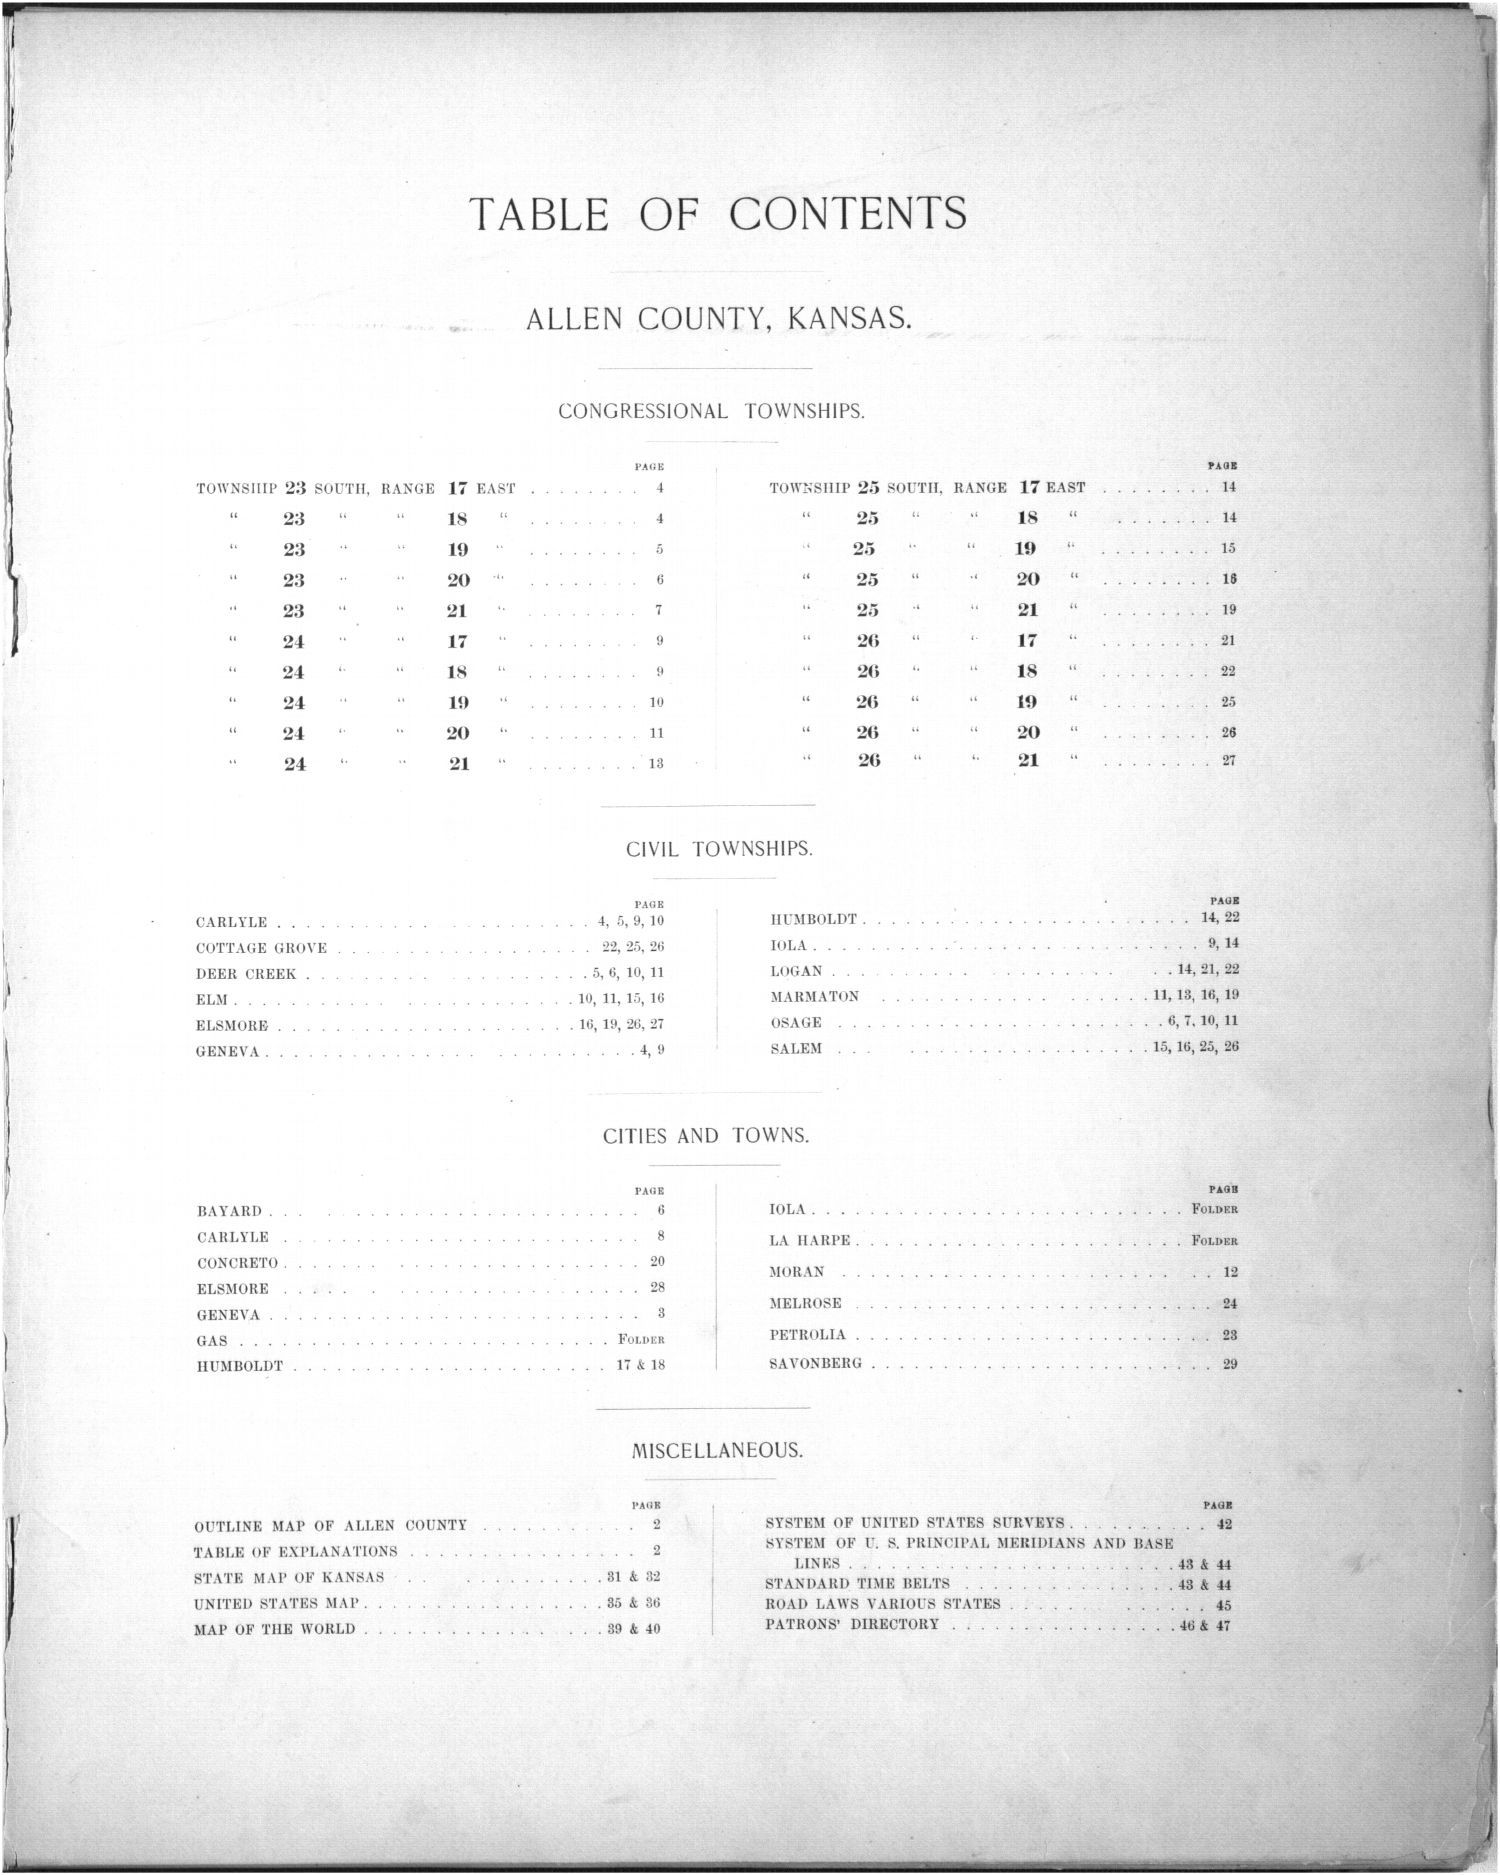 Plat book of Allen County, Kansas - Table of Contents